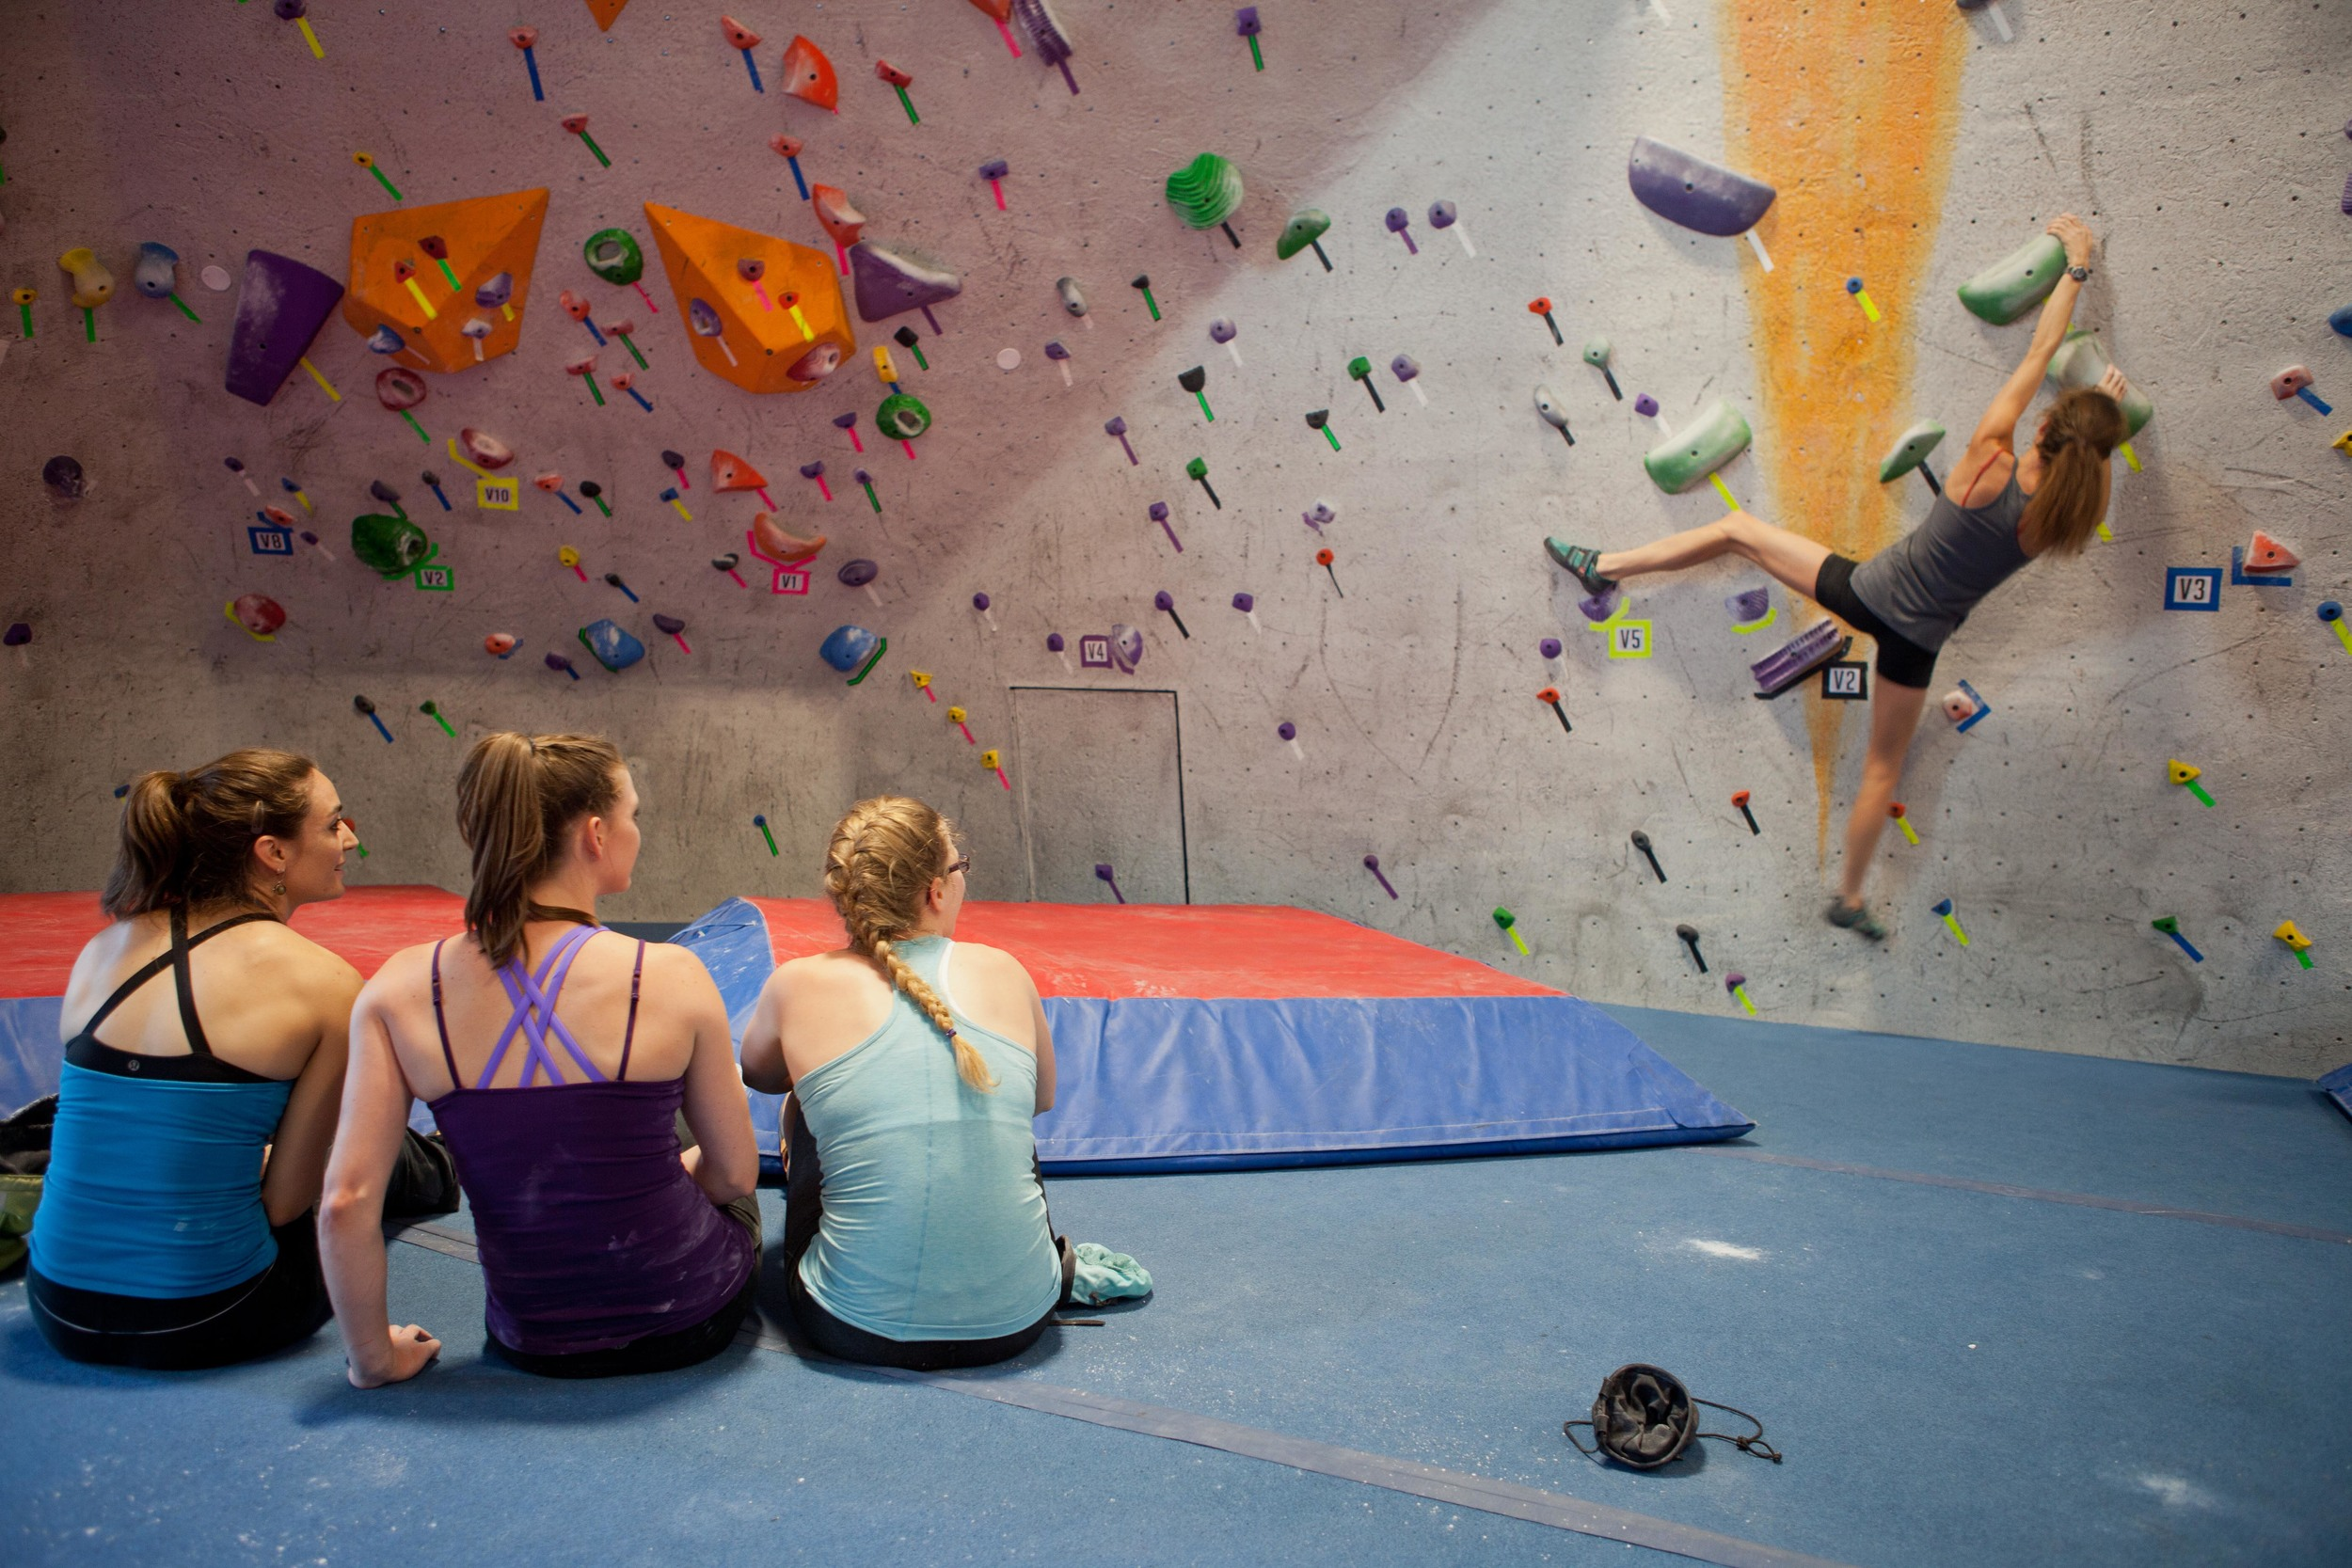 2013_08_11 Andrea climbing photos-156-3.jpg